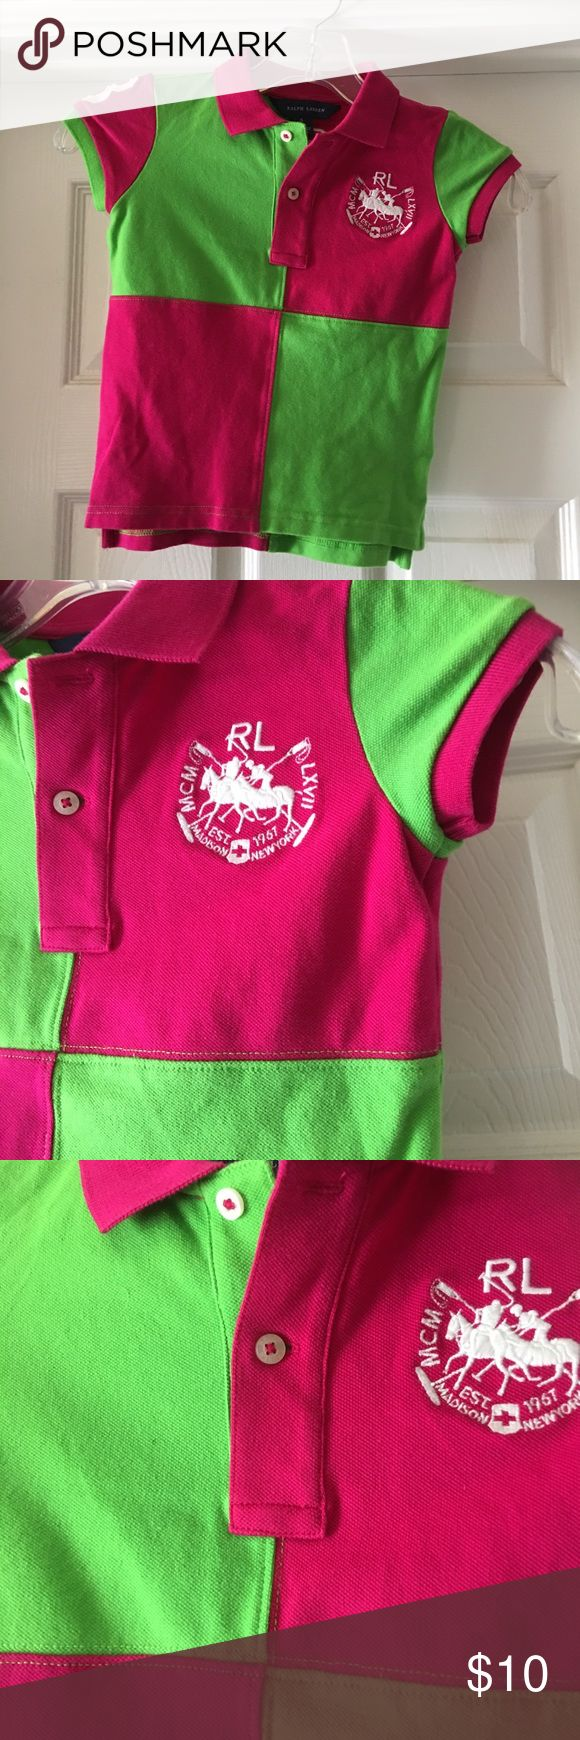 Ralph Lauren Lime Green & Hot Pink Polo Shirt. Ralph Lauren Lime Green & Hot Pink Polo Shirt. Logo on chest. Number 3 on the back and on the sleeve. Great condition! Cotton/Elastane. Pullover. Ralph Lauren Shirts & Tops Polos